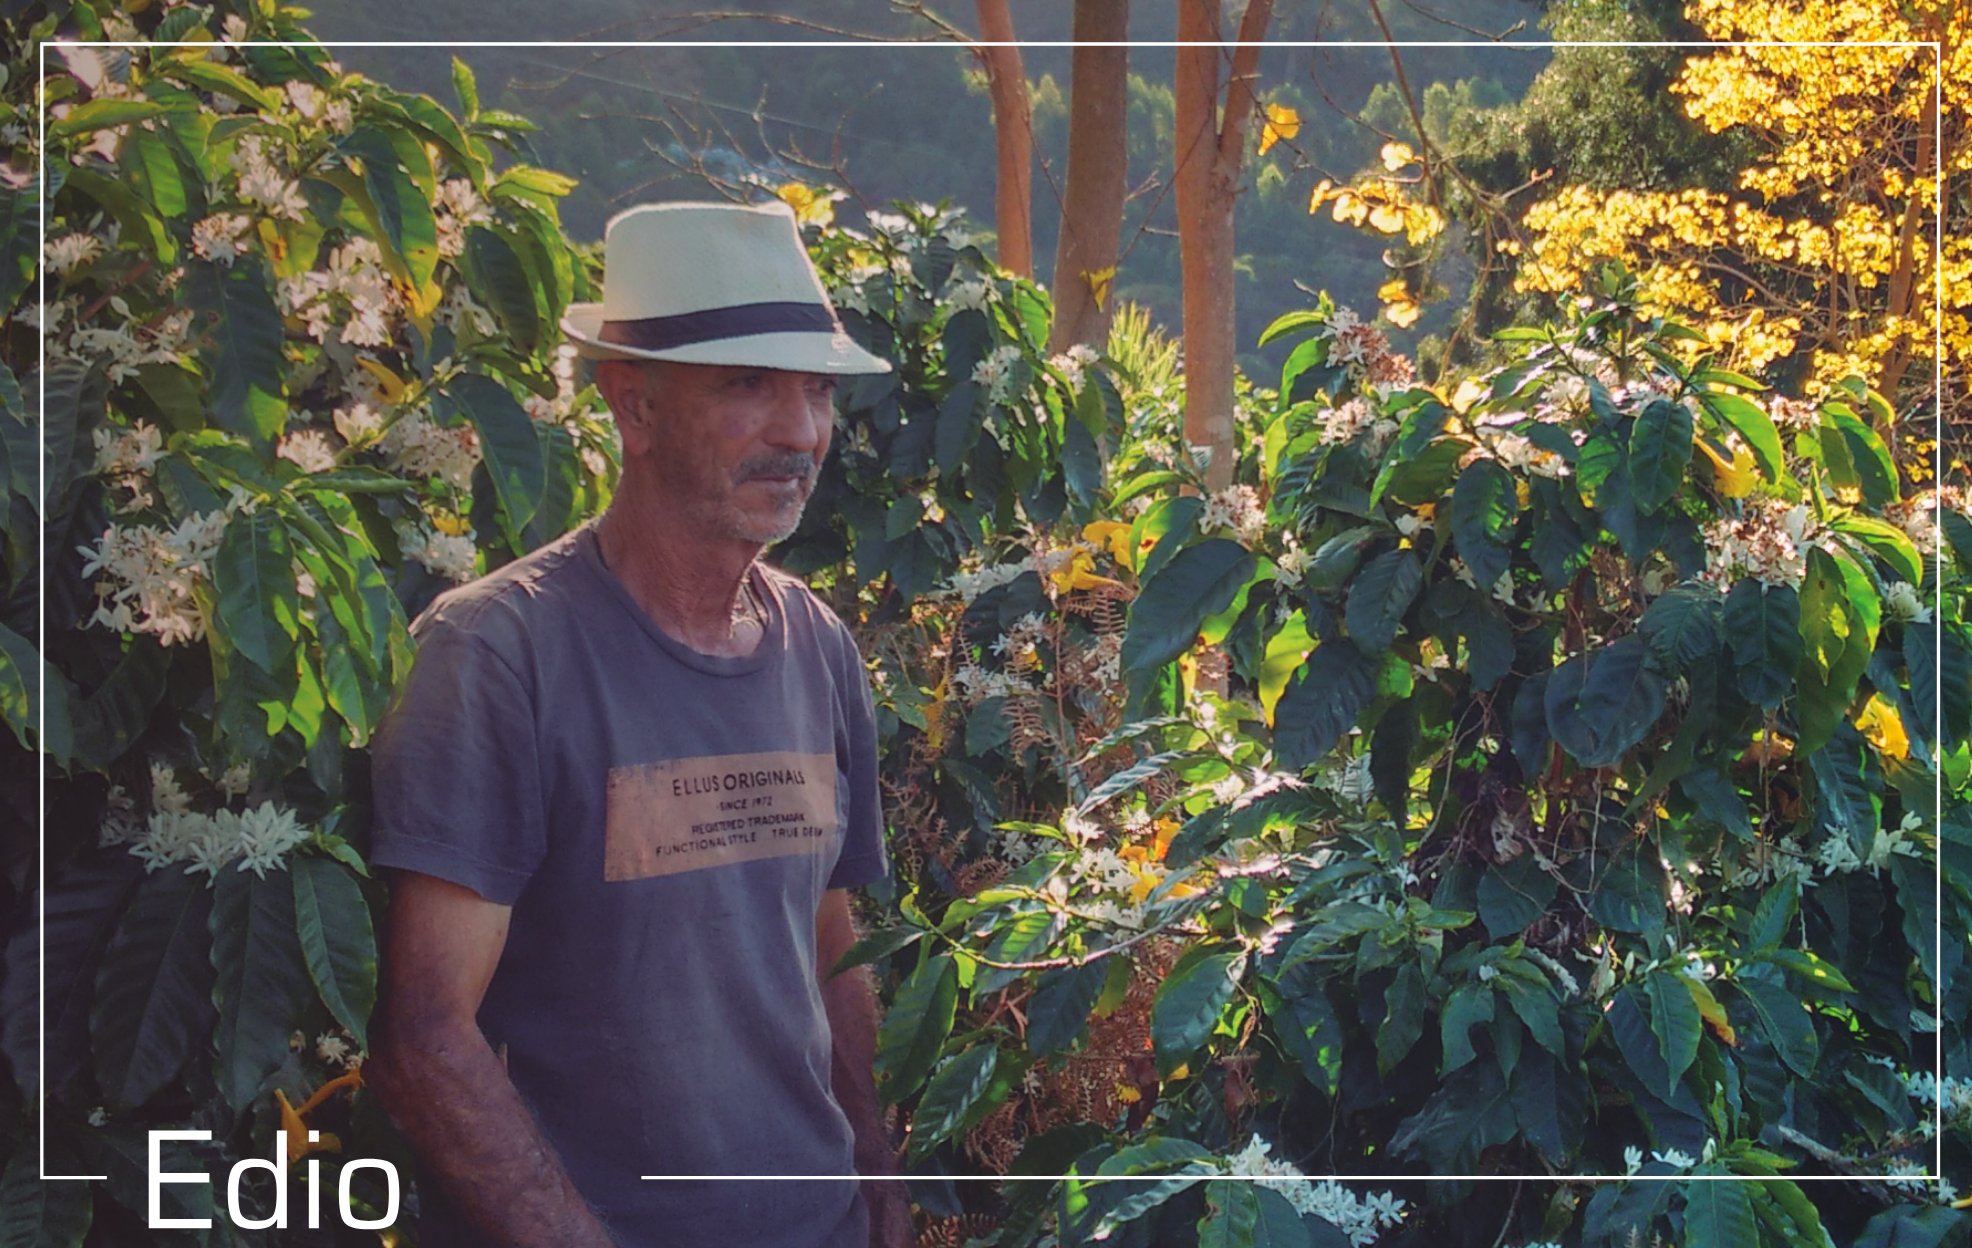 Meet Edio Miranda, one of our coffee growers based in the mountains of Araponga, Brazil.